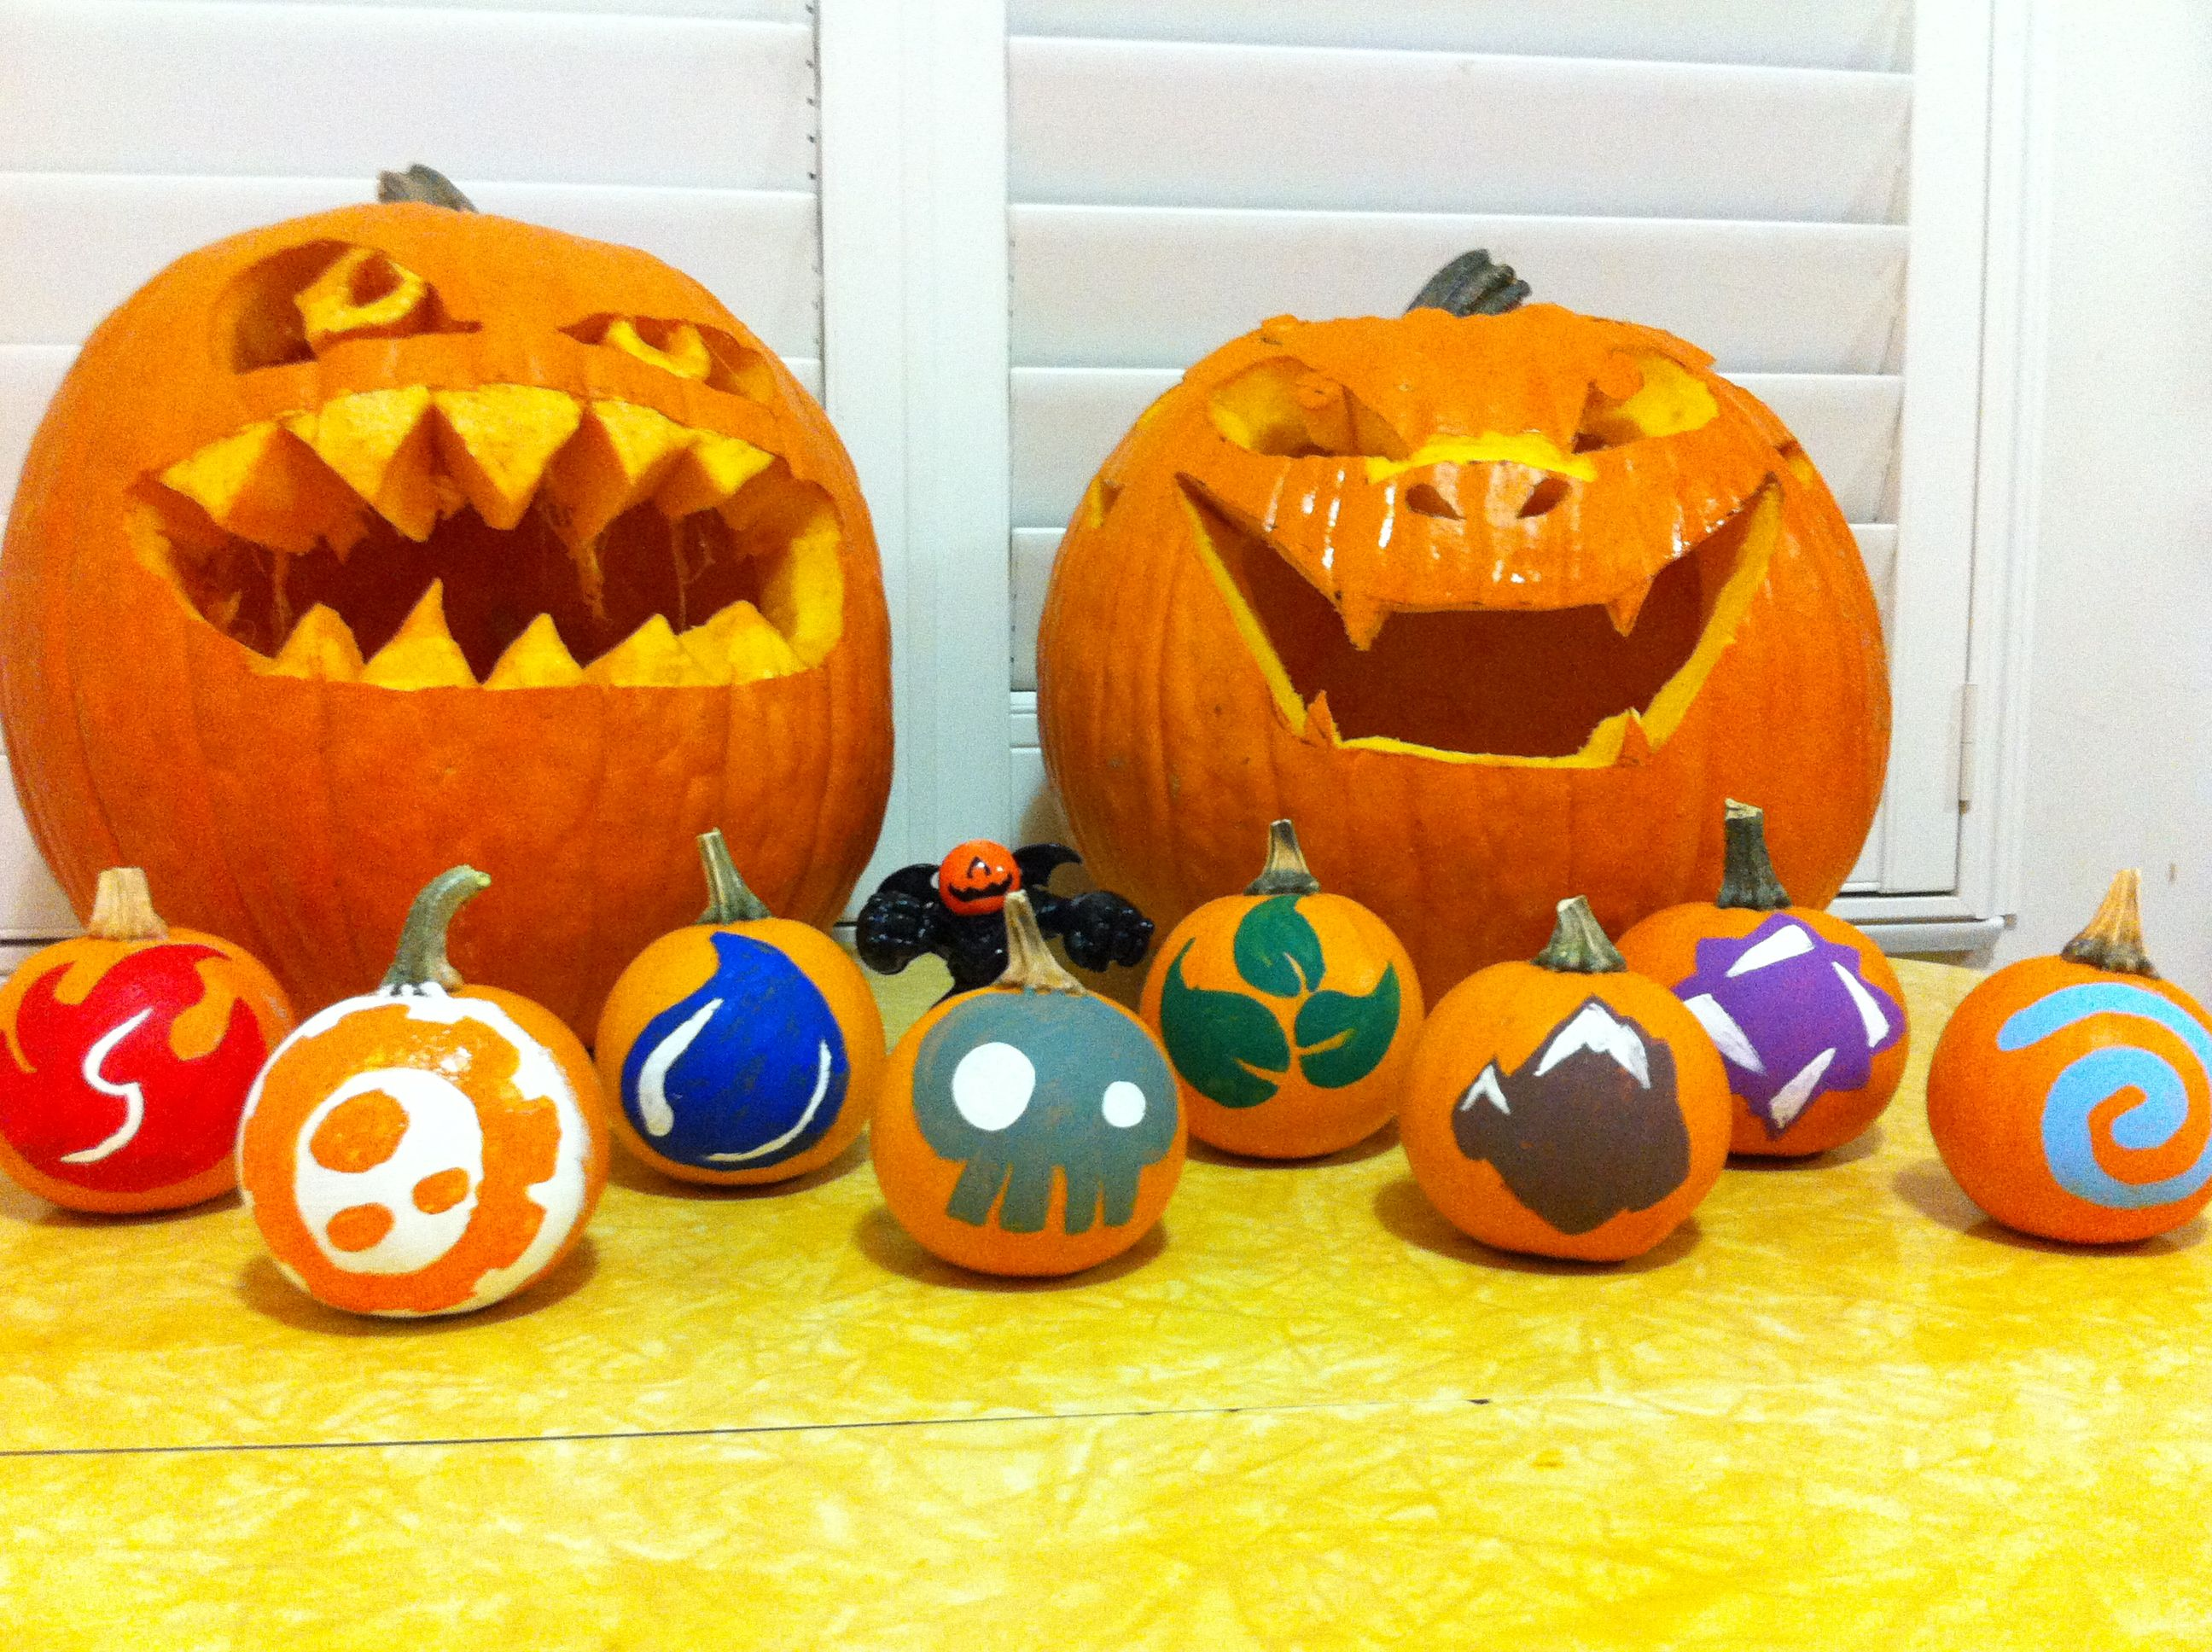 Our skylander themed pumpkins from camo back right